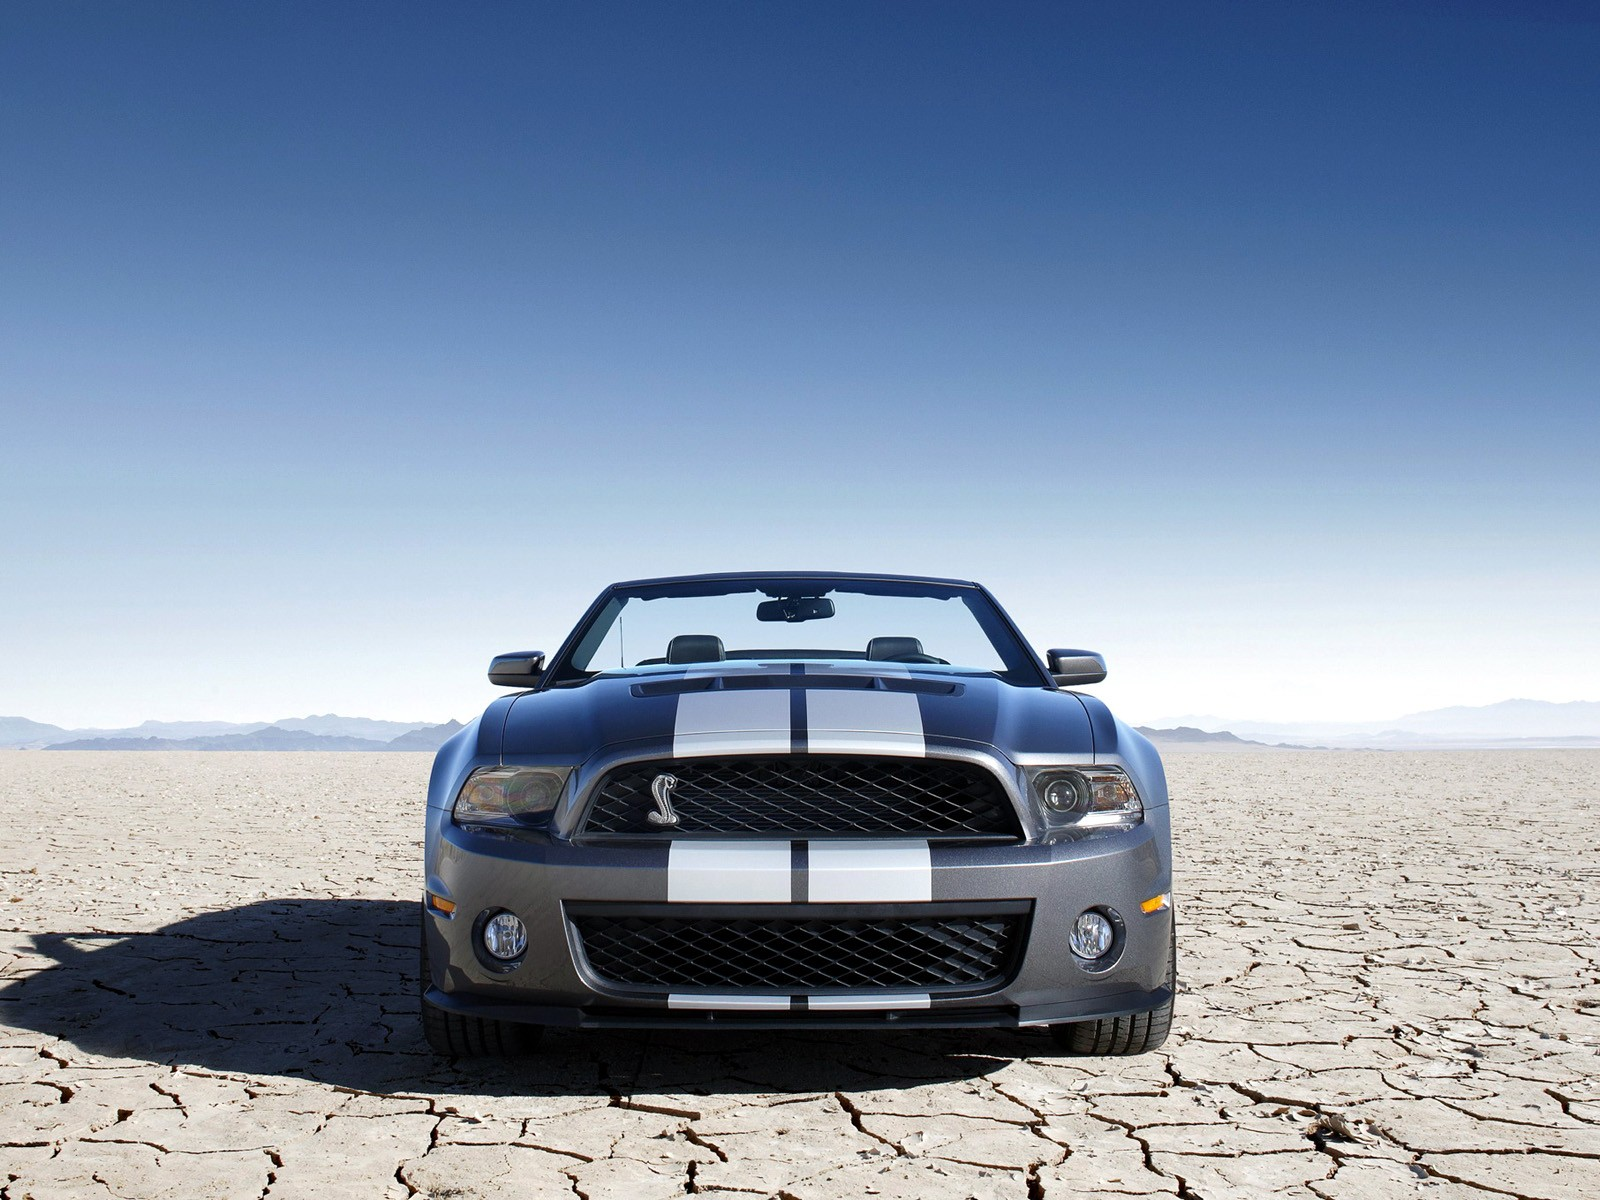 Mustang Car Wallpaper Download Ford Mustang Shelby Gt500 Convertible 2009 2010 2011